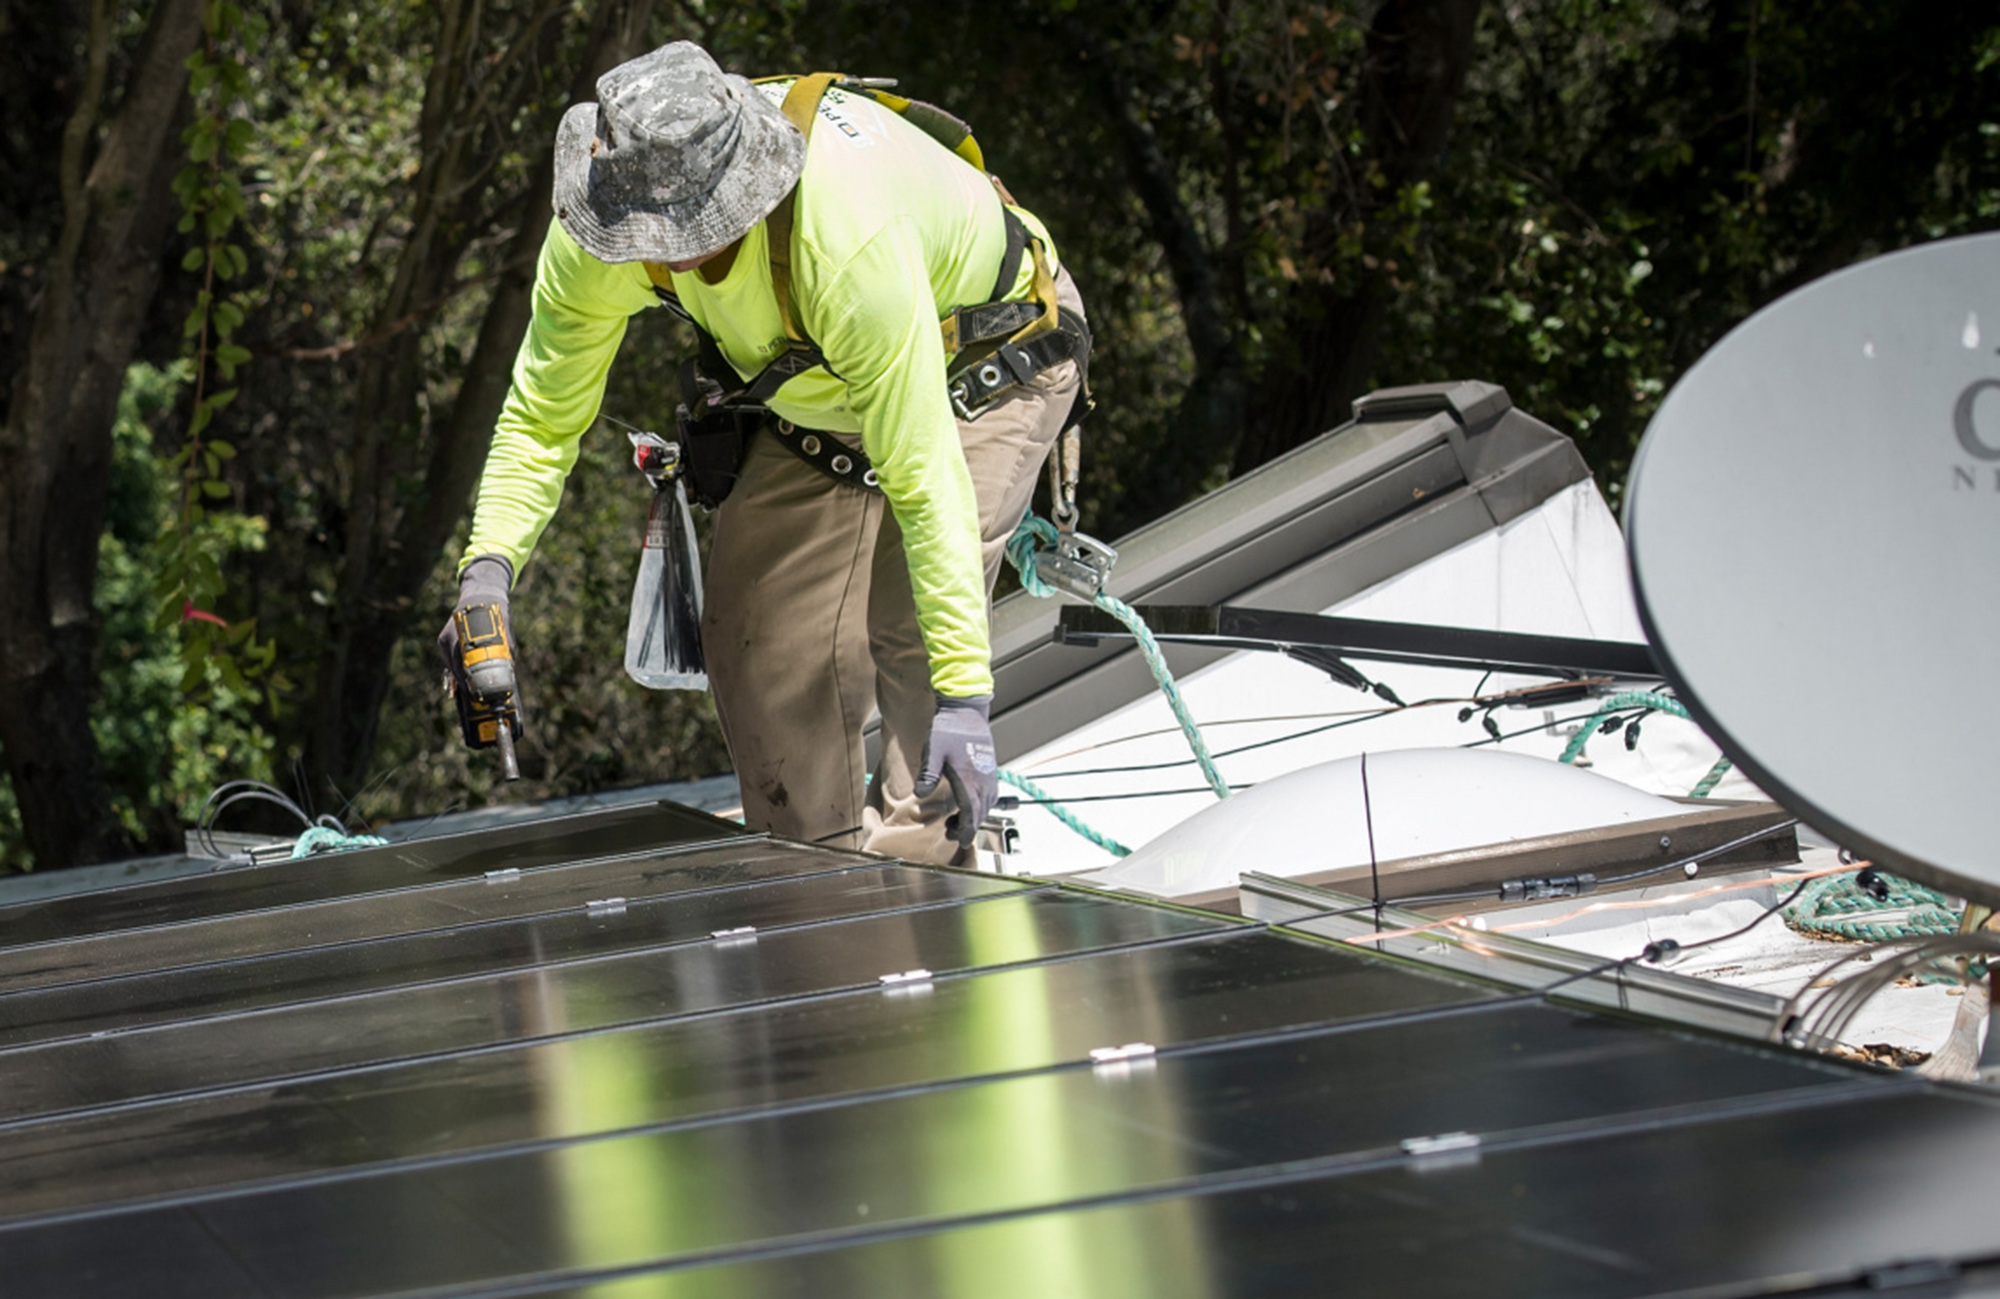 A worker installs solar panels on the roof of a home in California.